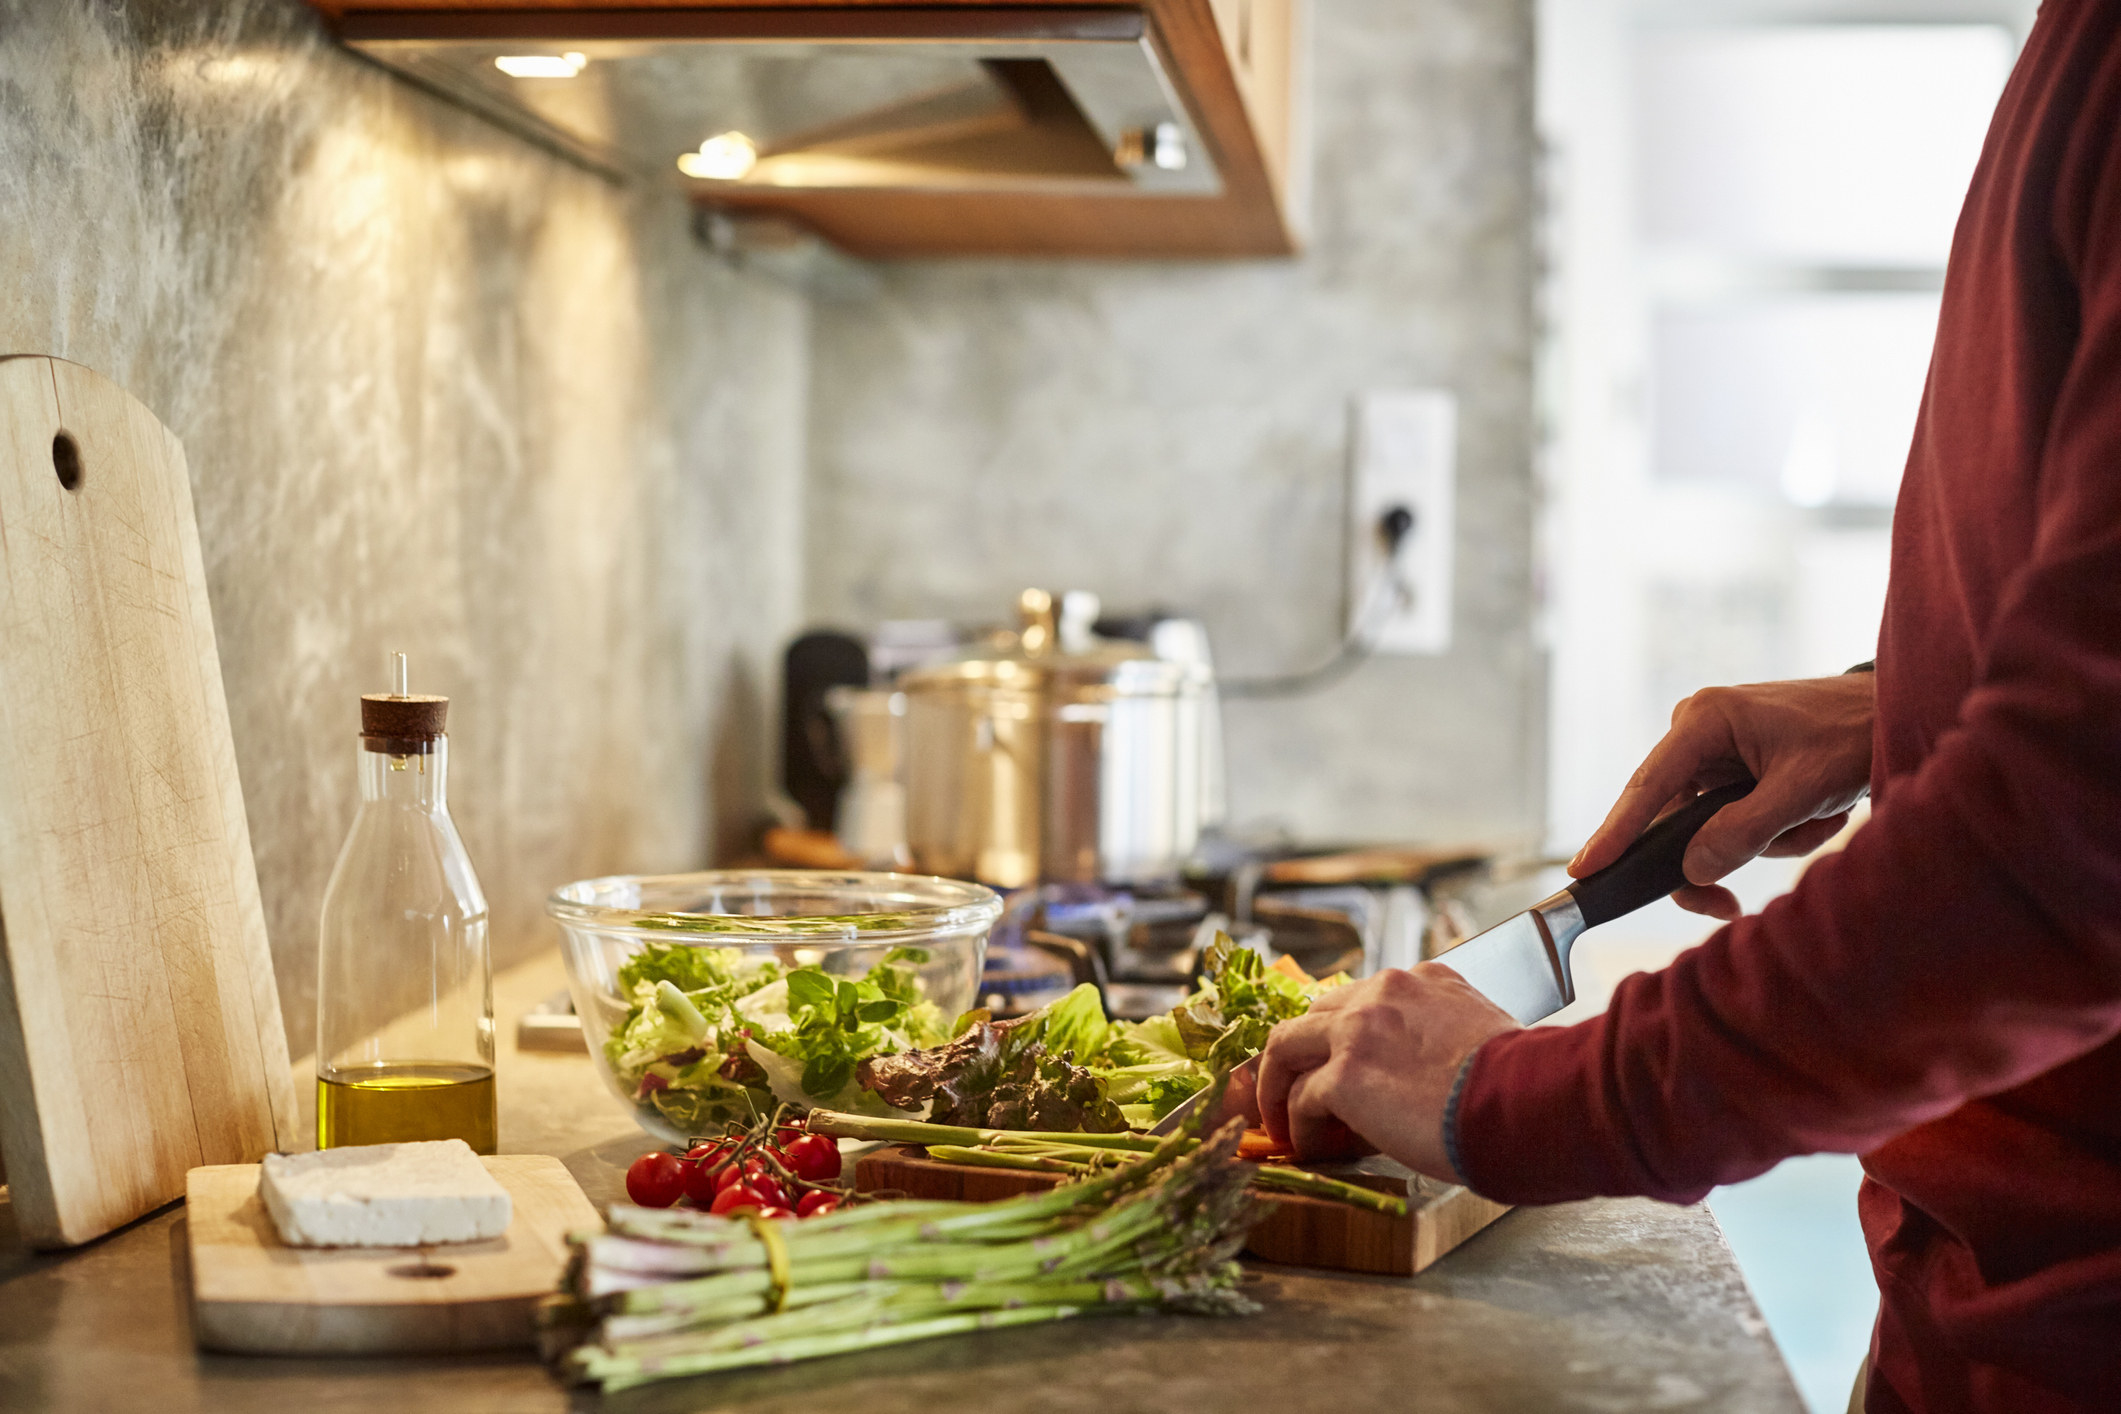 A woman cooking vegetables.